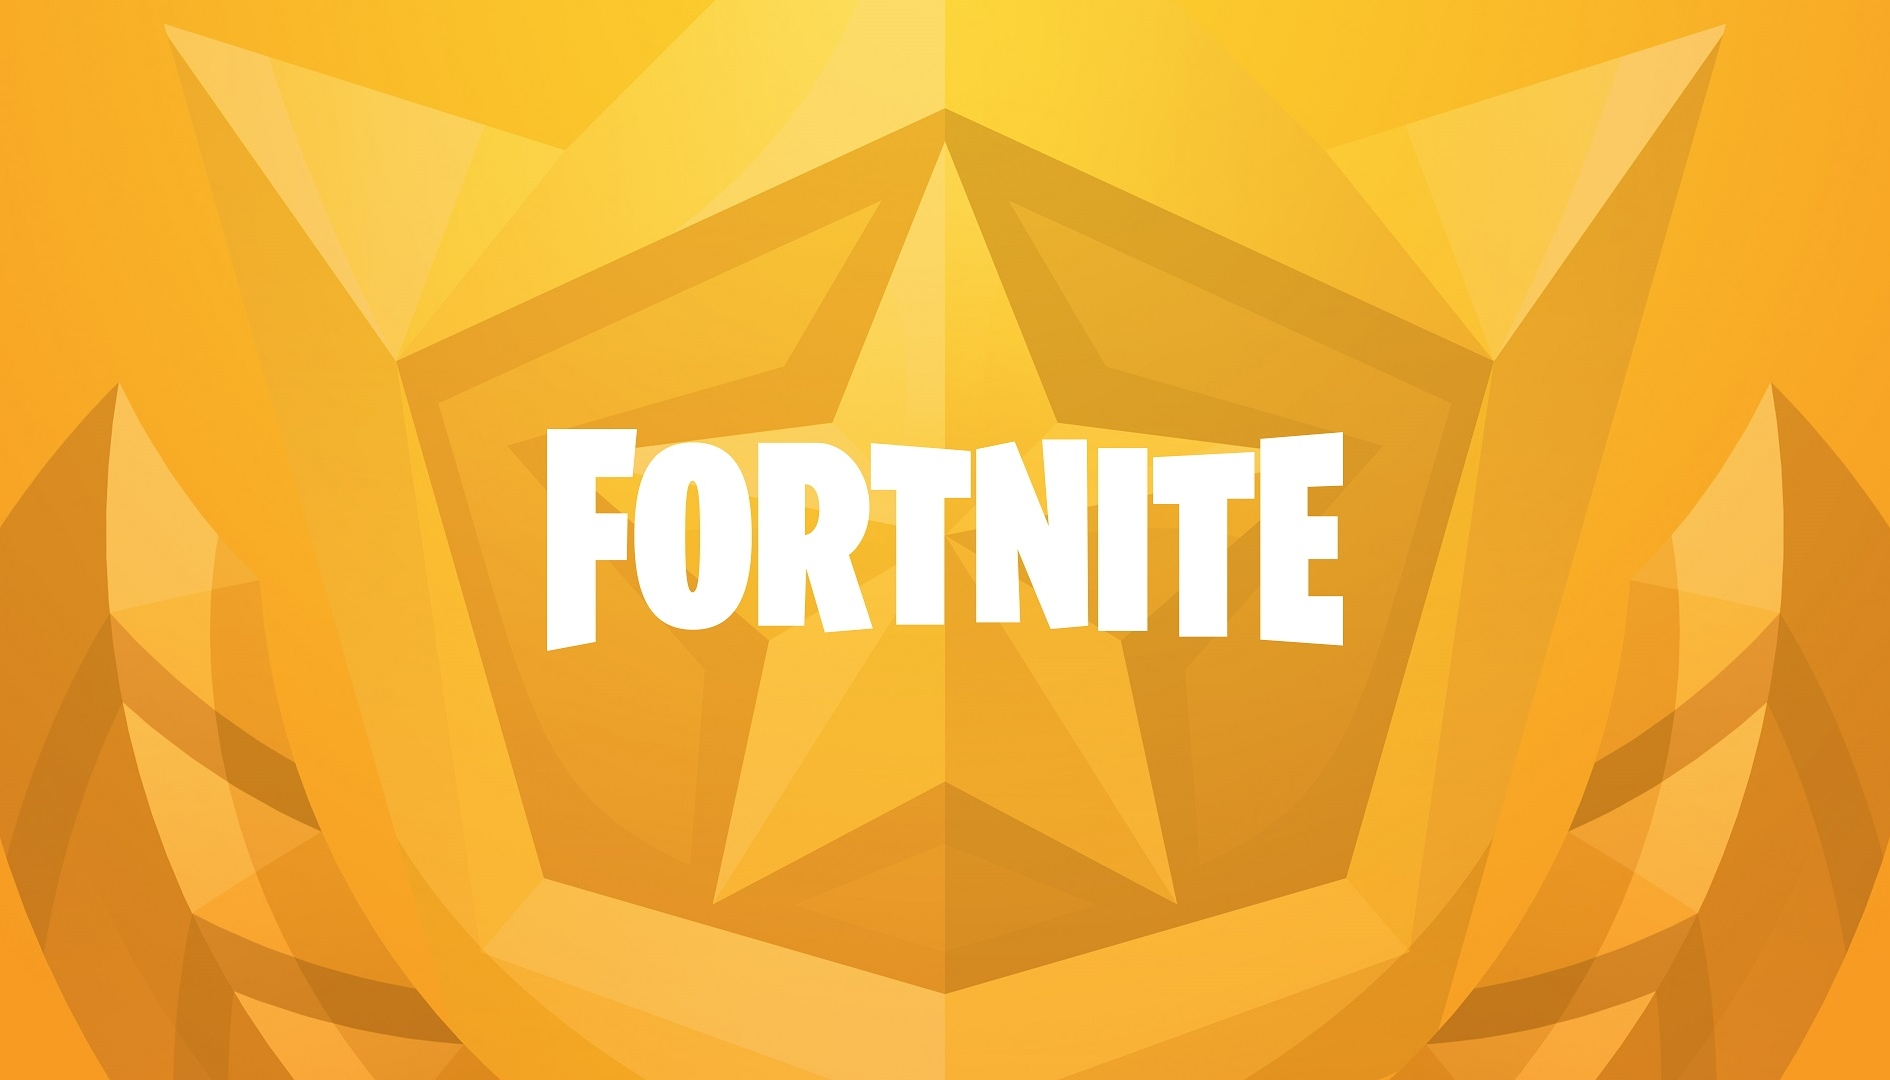 Fortnite: come partecipare all'evento a posti limitati Il Dispositivo